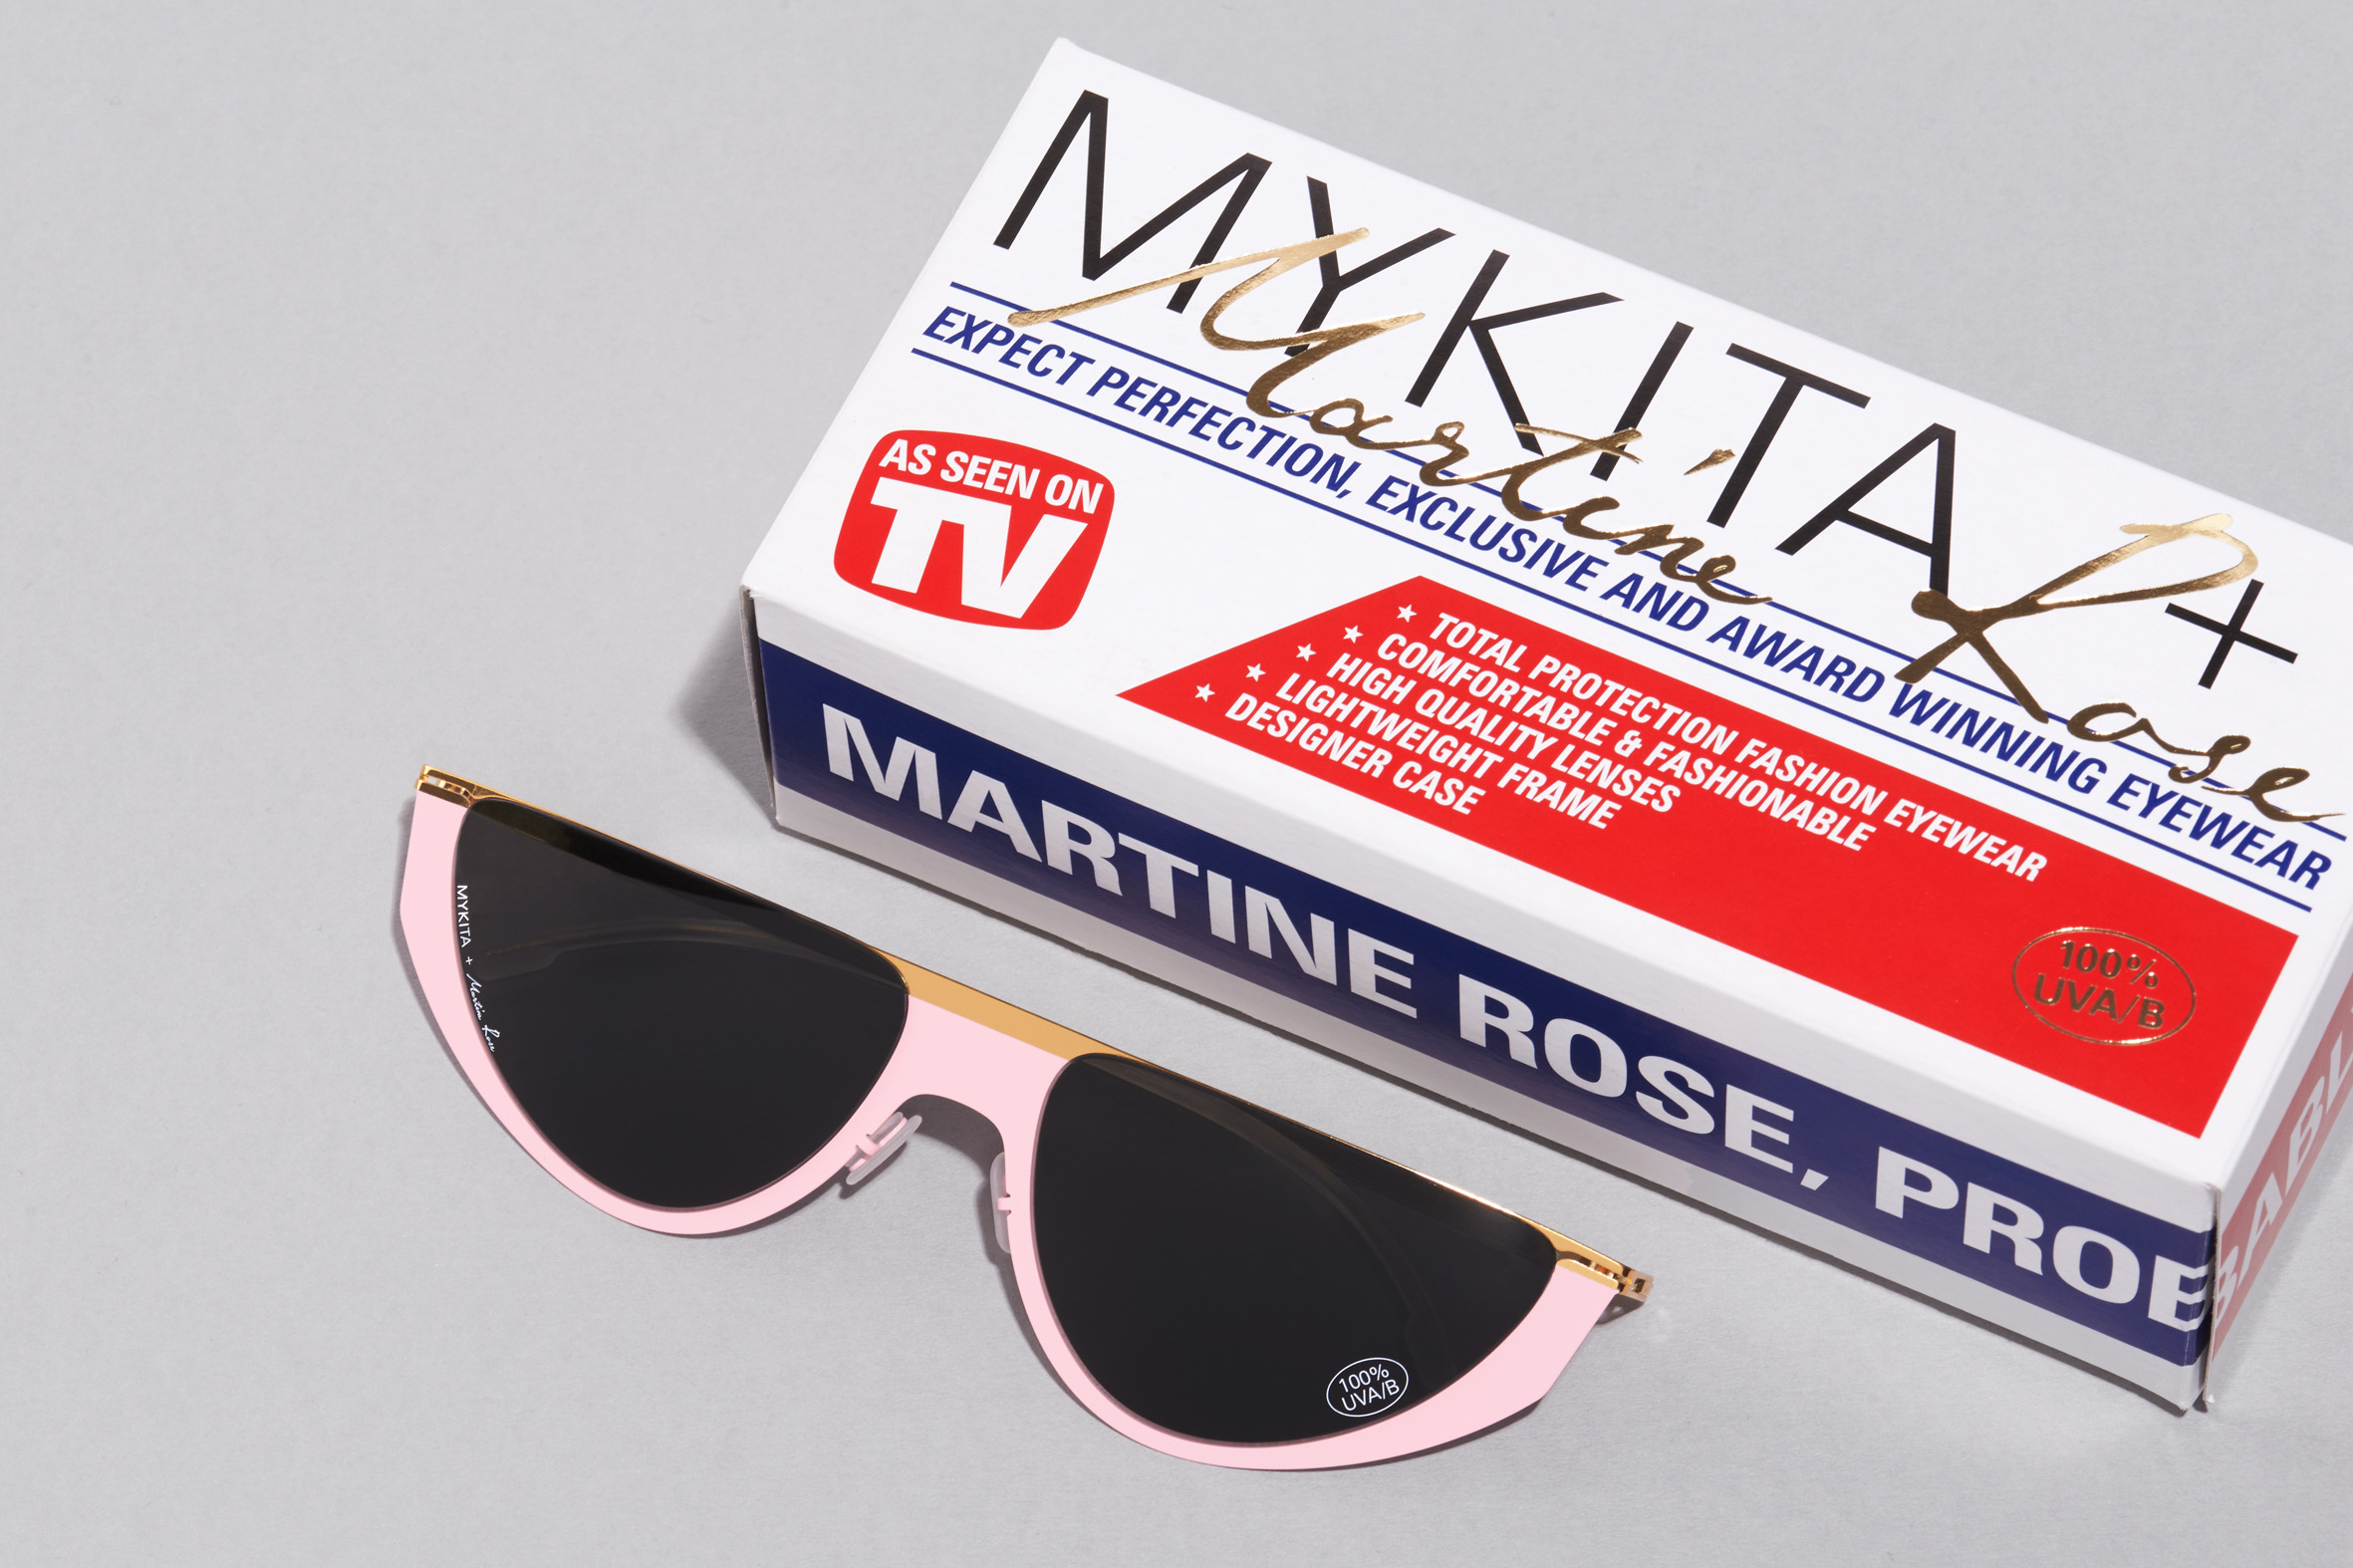 MYKITA Martine Rose Selina Pack Shot Optimized